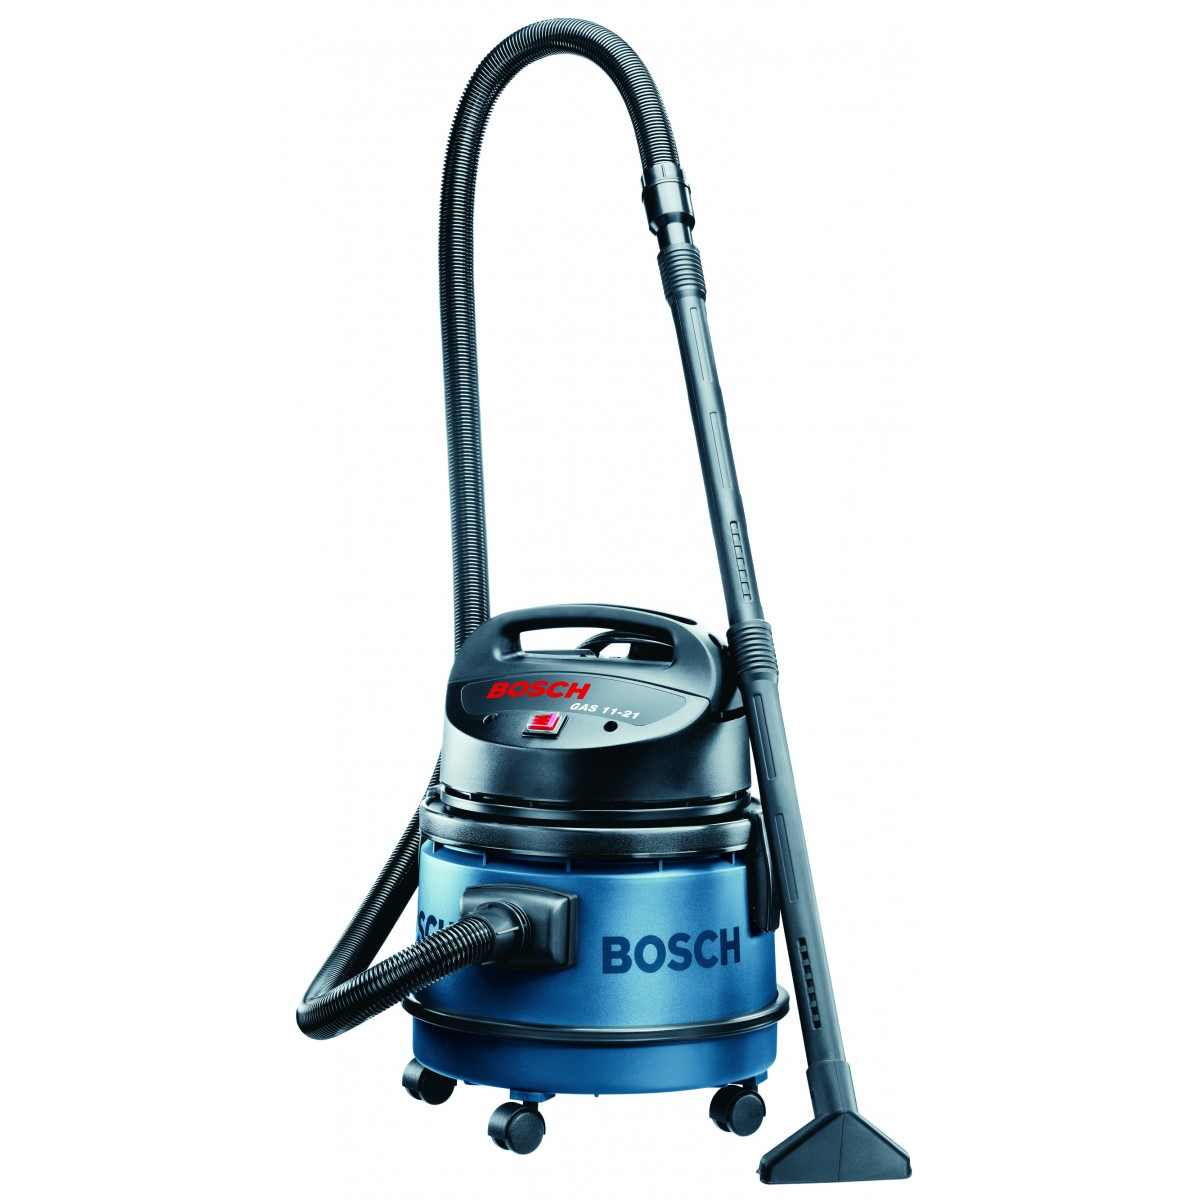 bosch wet dry vacuum cleaner gas 11 21 vacuum cleaners. Black Bedroom Furniture Sets. Home Design Ideas